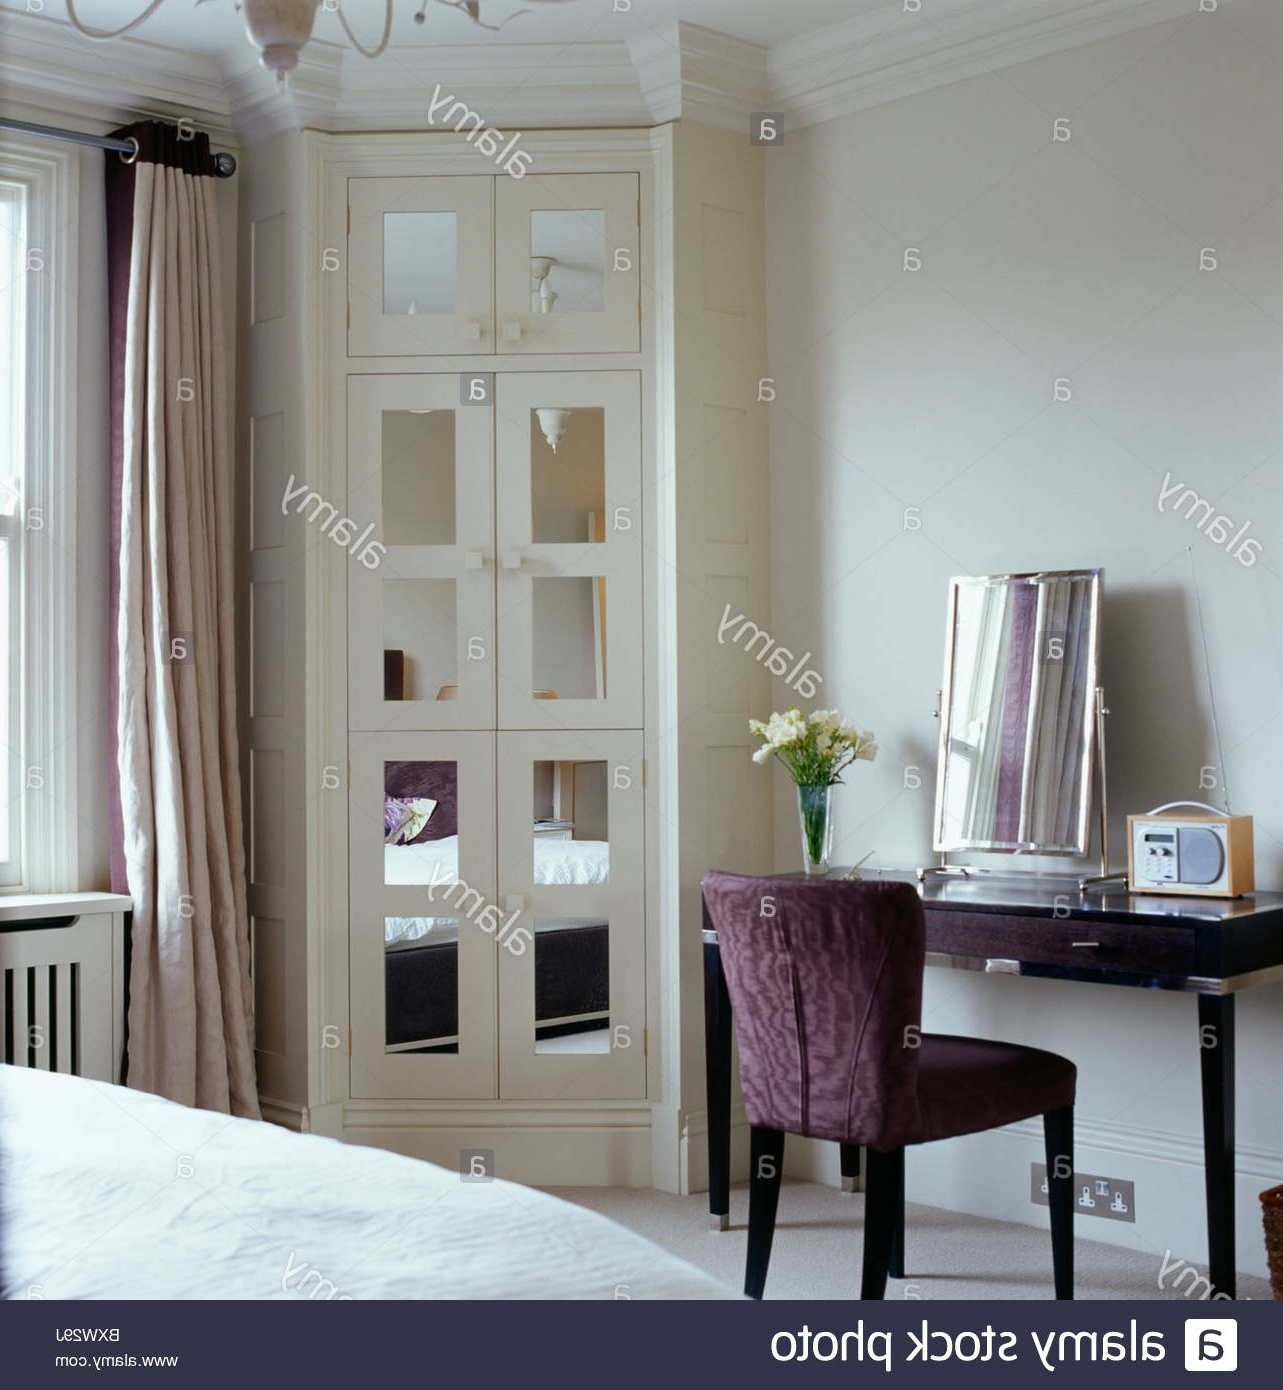 2018 Mirrored Glass Panels In Fitted Corner Wardrobe In Bedroom With For Corner Mirrored Wardrobes (View 13 of 15)